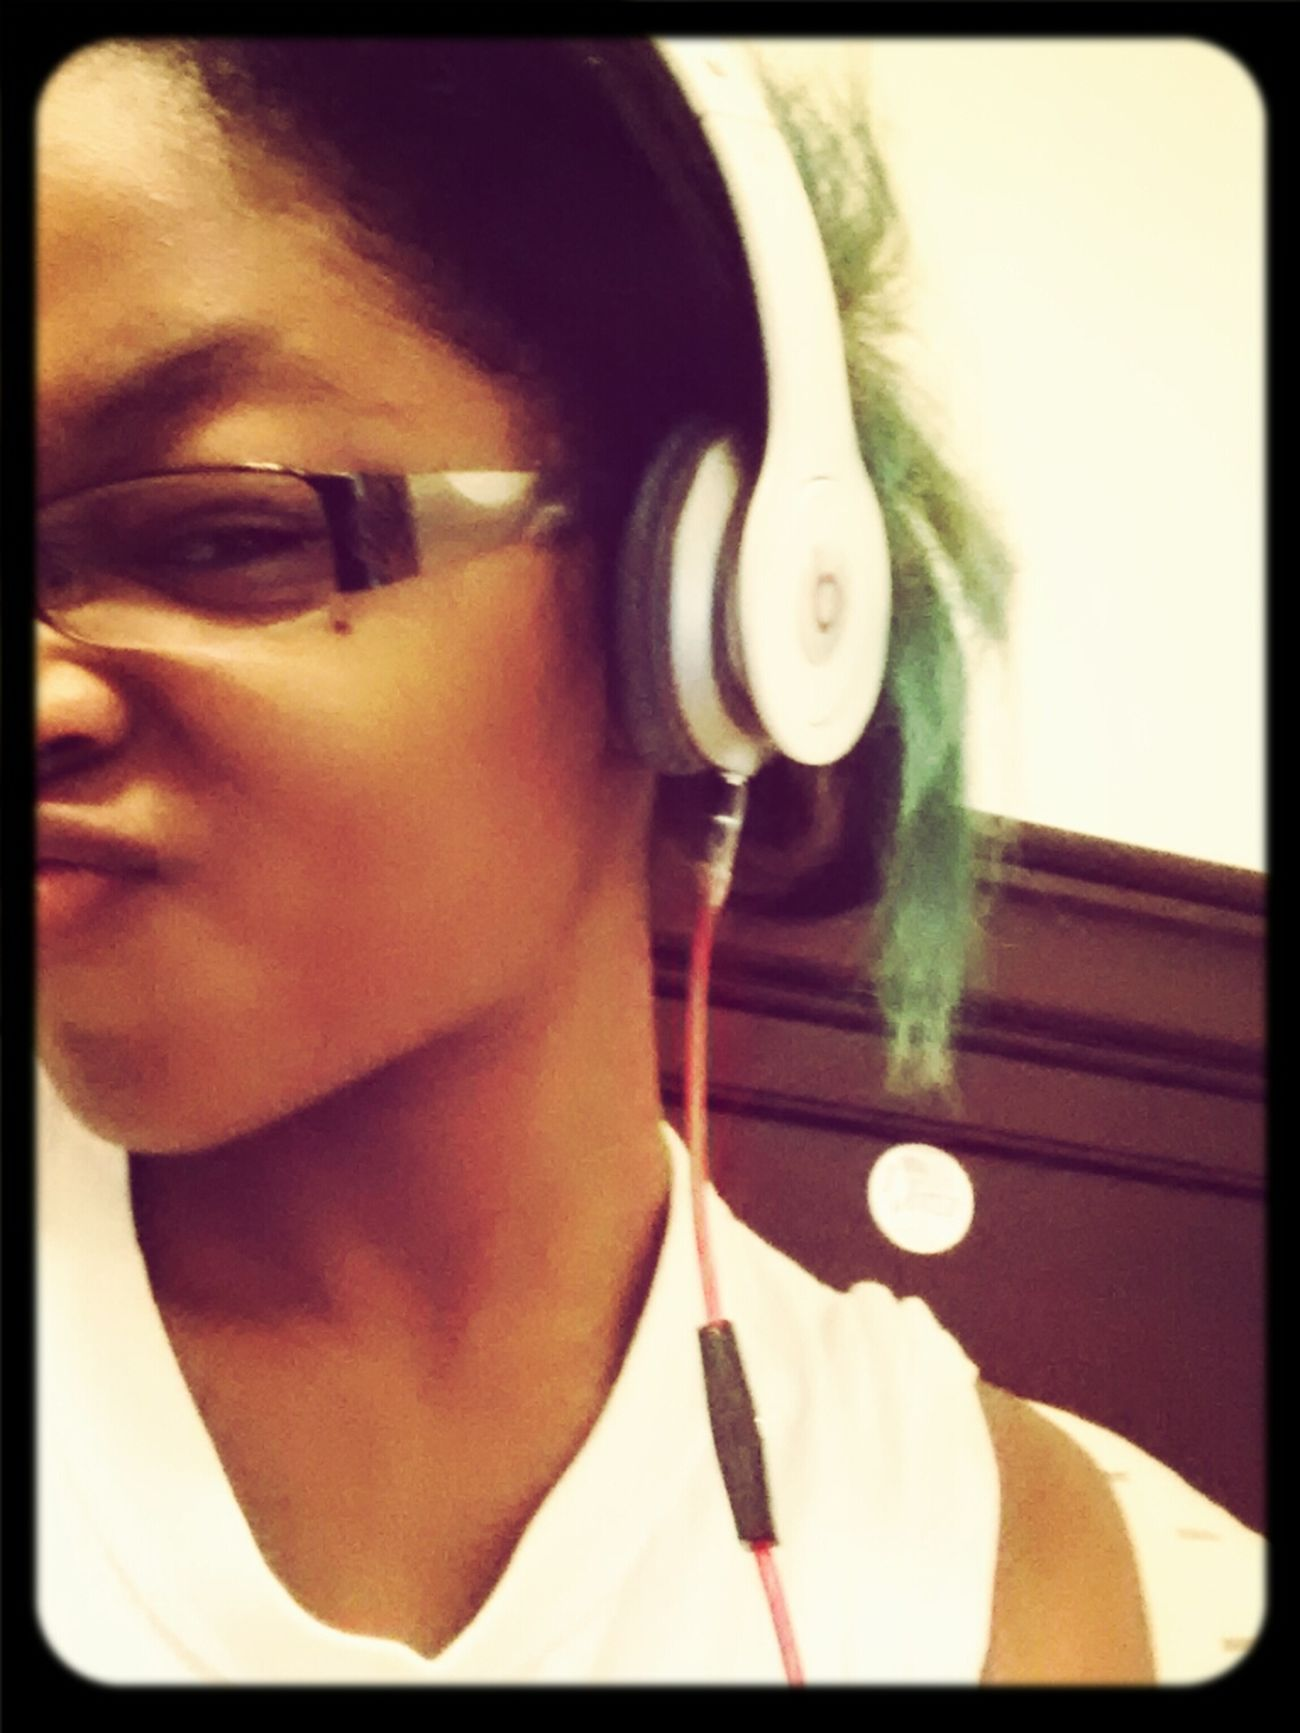 Because music brings out so much emotion <3 #DreBeats Dyed Hair Drebeats Beautiful Music Follow Me Cute Funny Crazy Blue Hair Likeforlike